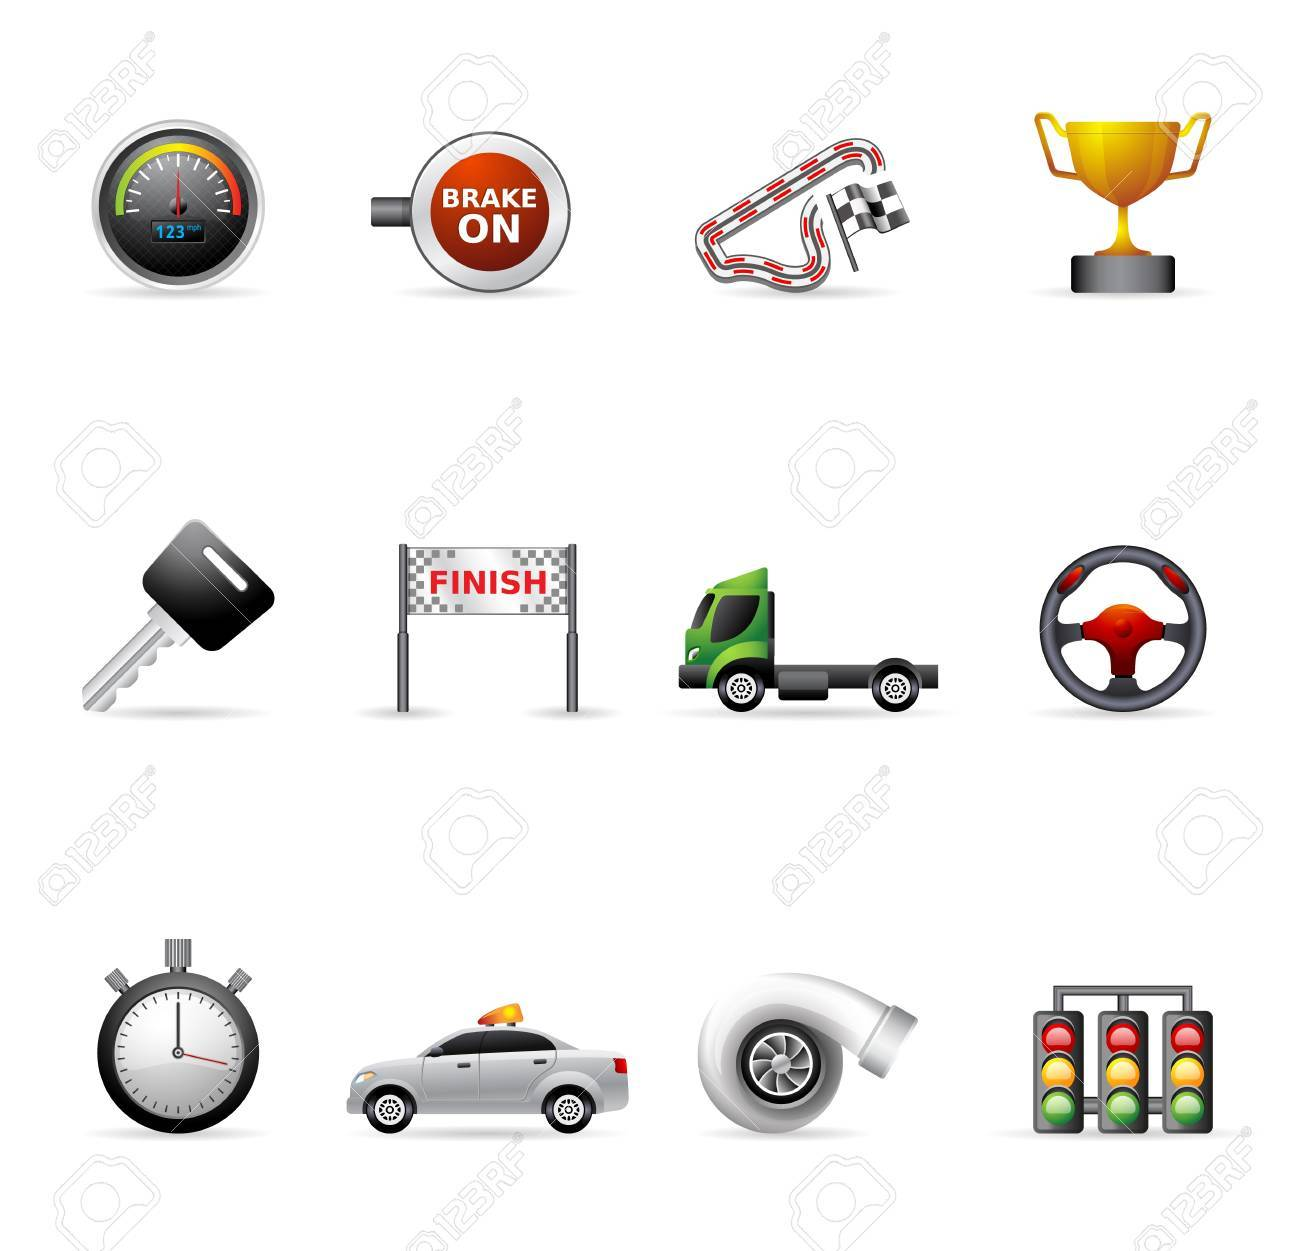 Racing icon series in colors. Stock Vector - 17233971